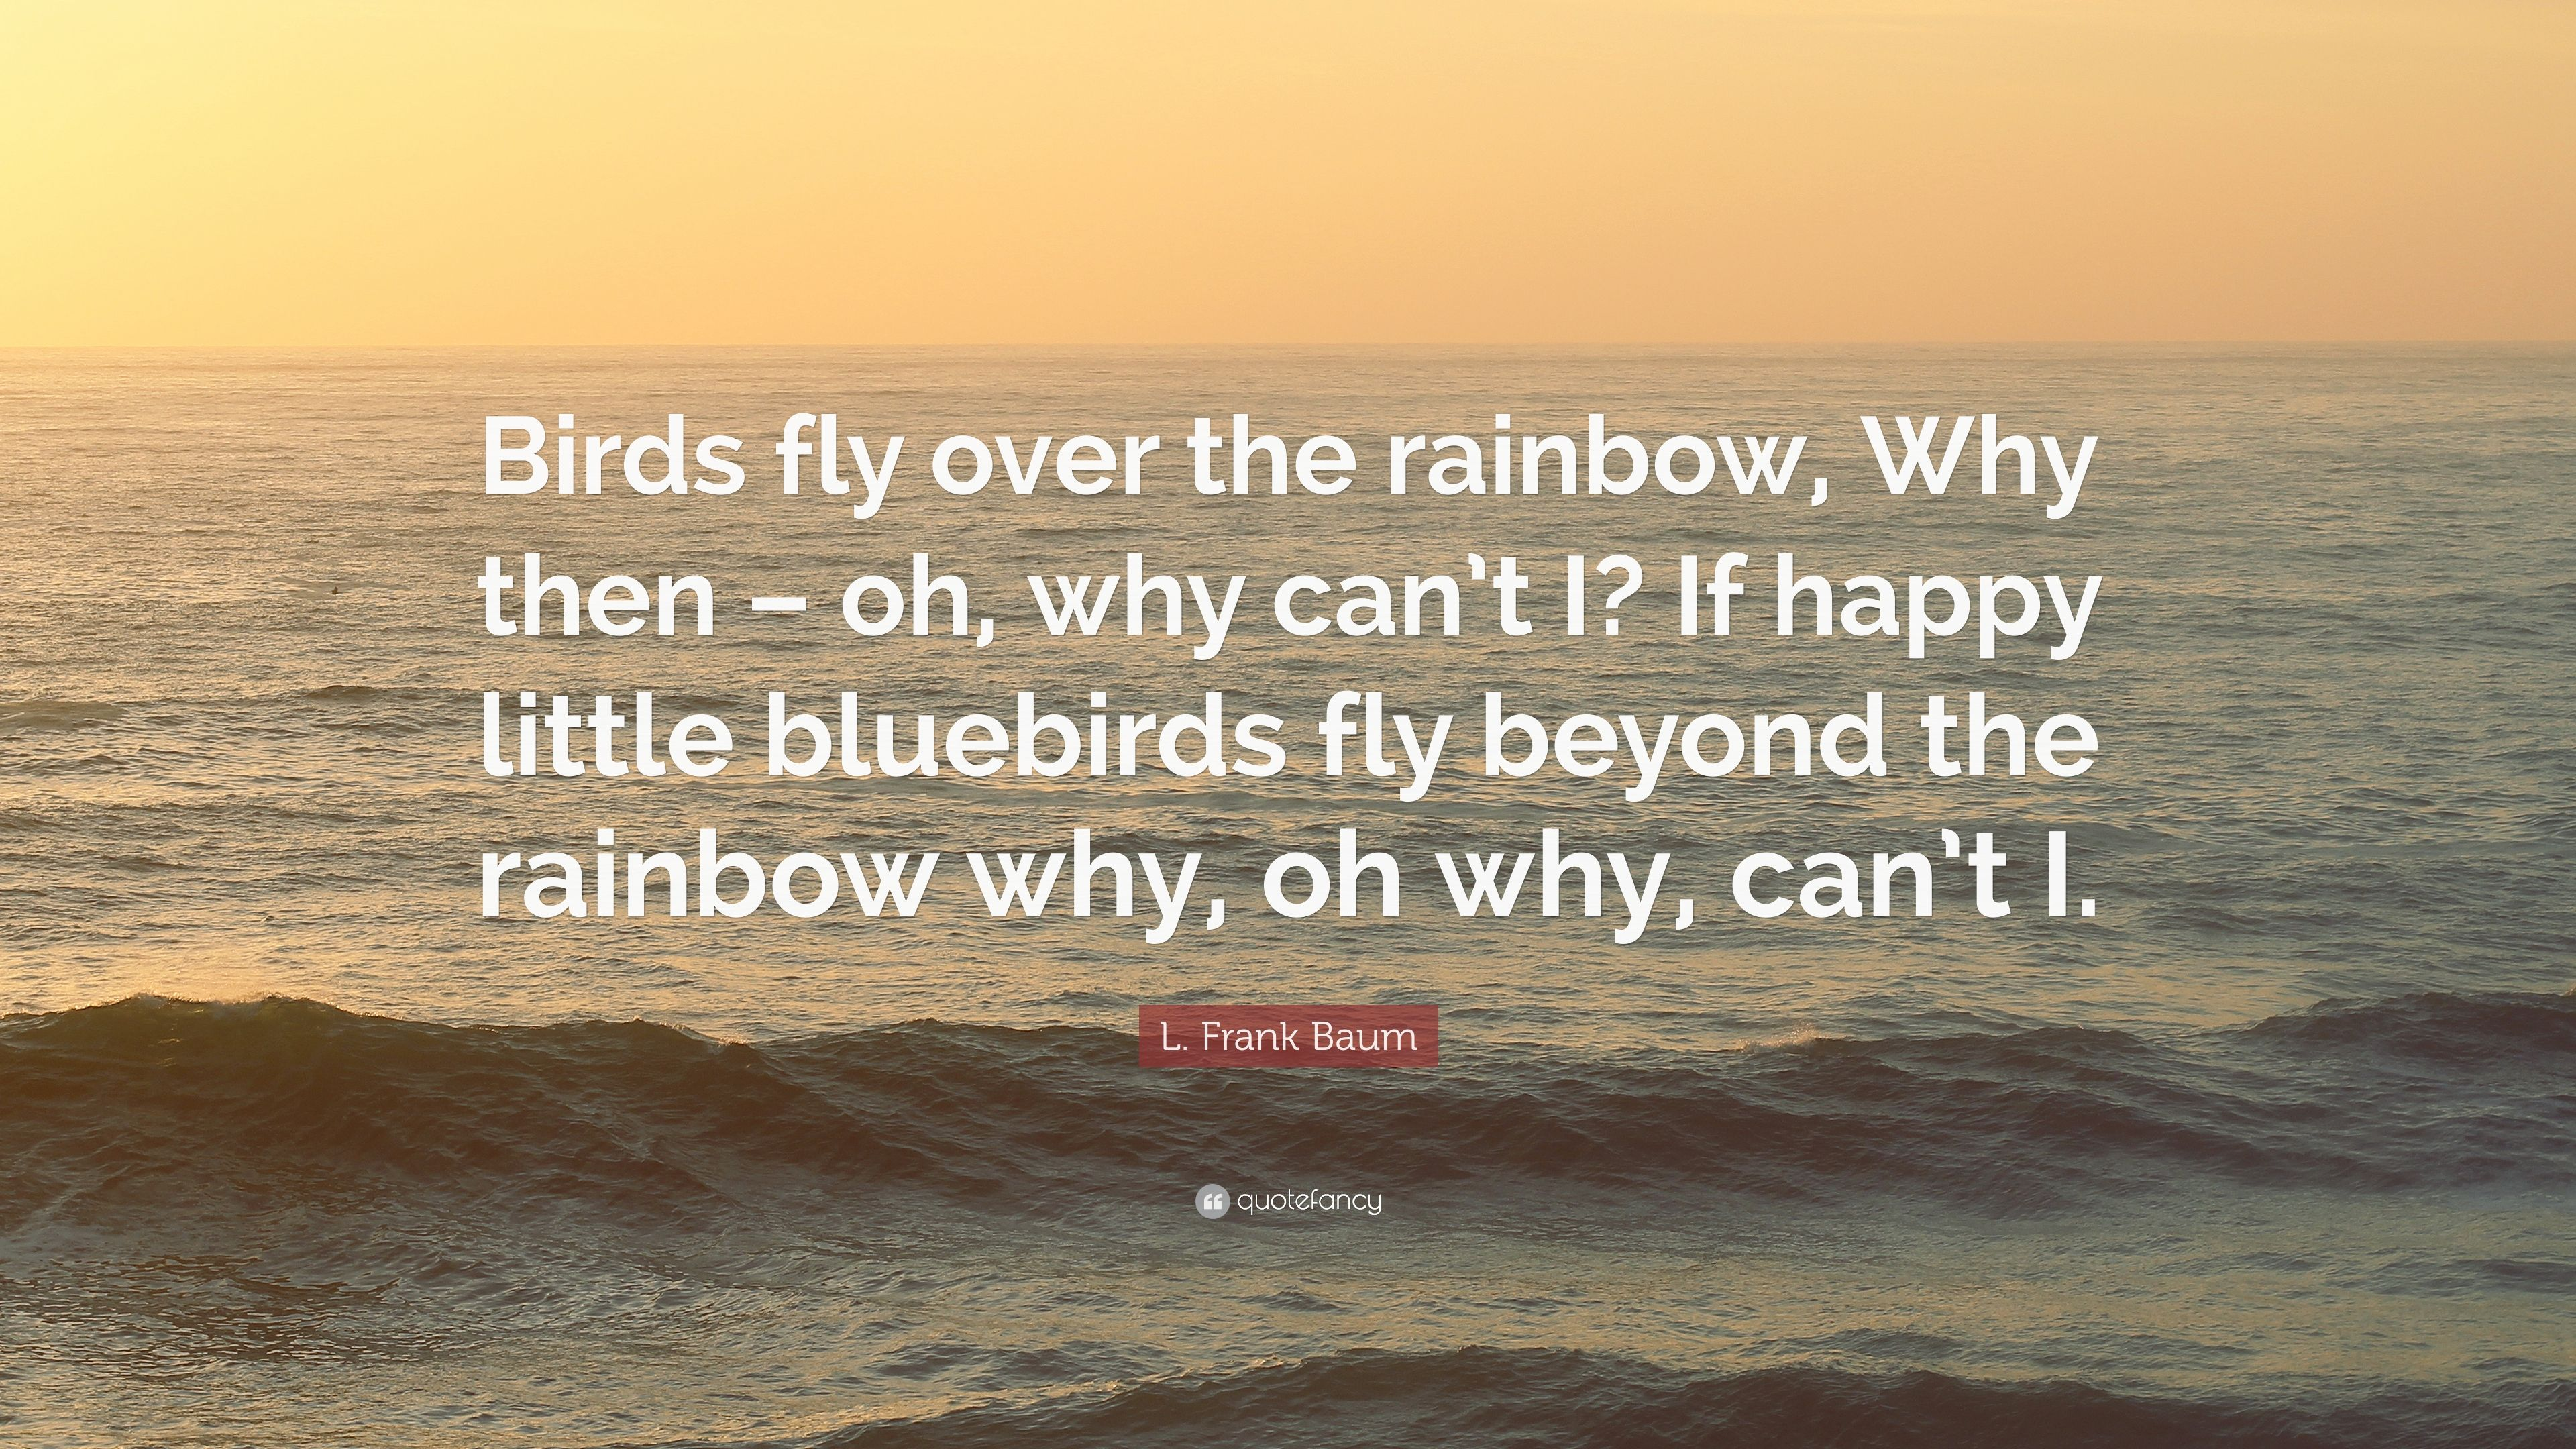 L Frank Baum Quote Birds Fly Over The Rainbow Why Then Oh Why Can T I If Happy Little Bluebirds Fly Beyond The Rainbow Why Oh Why Ca